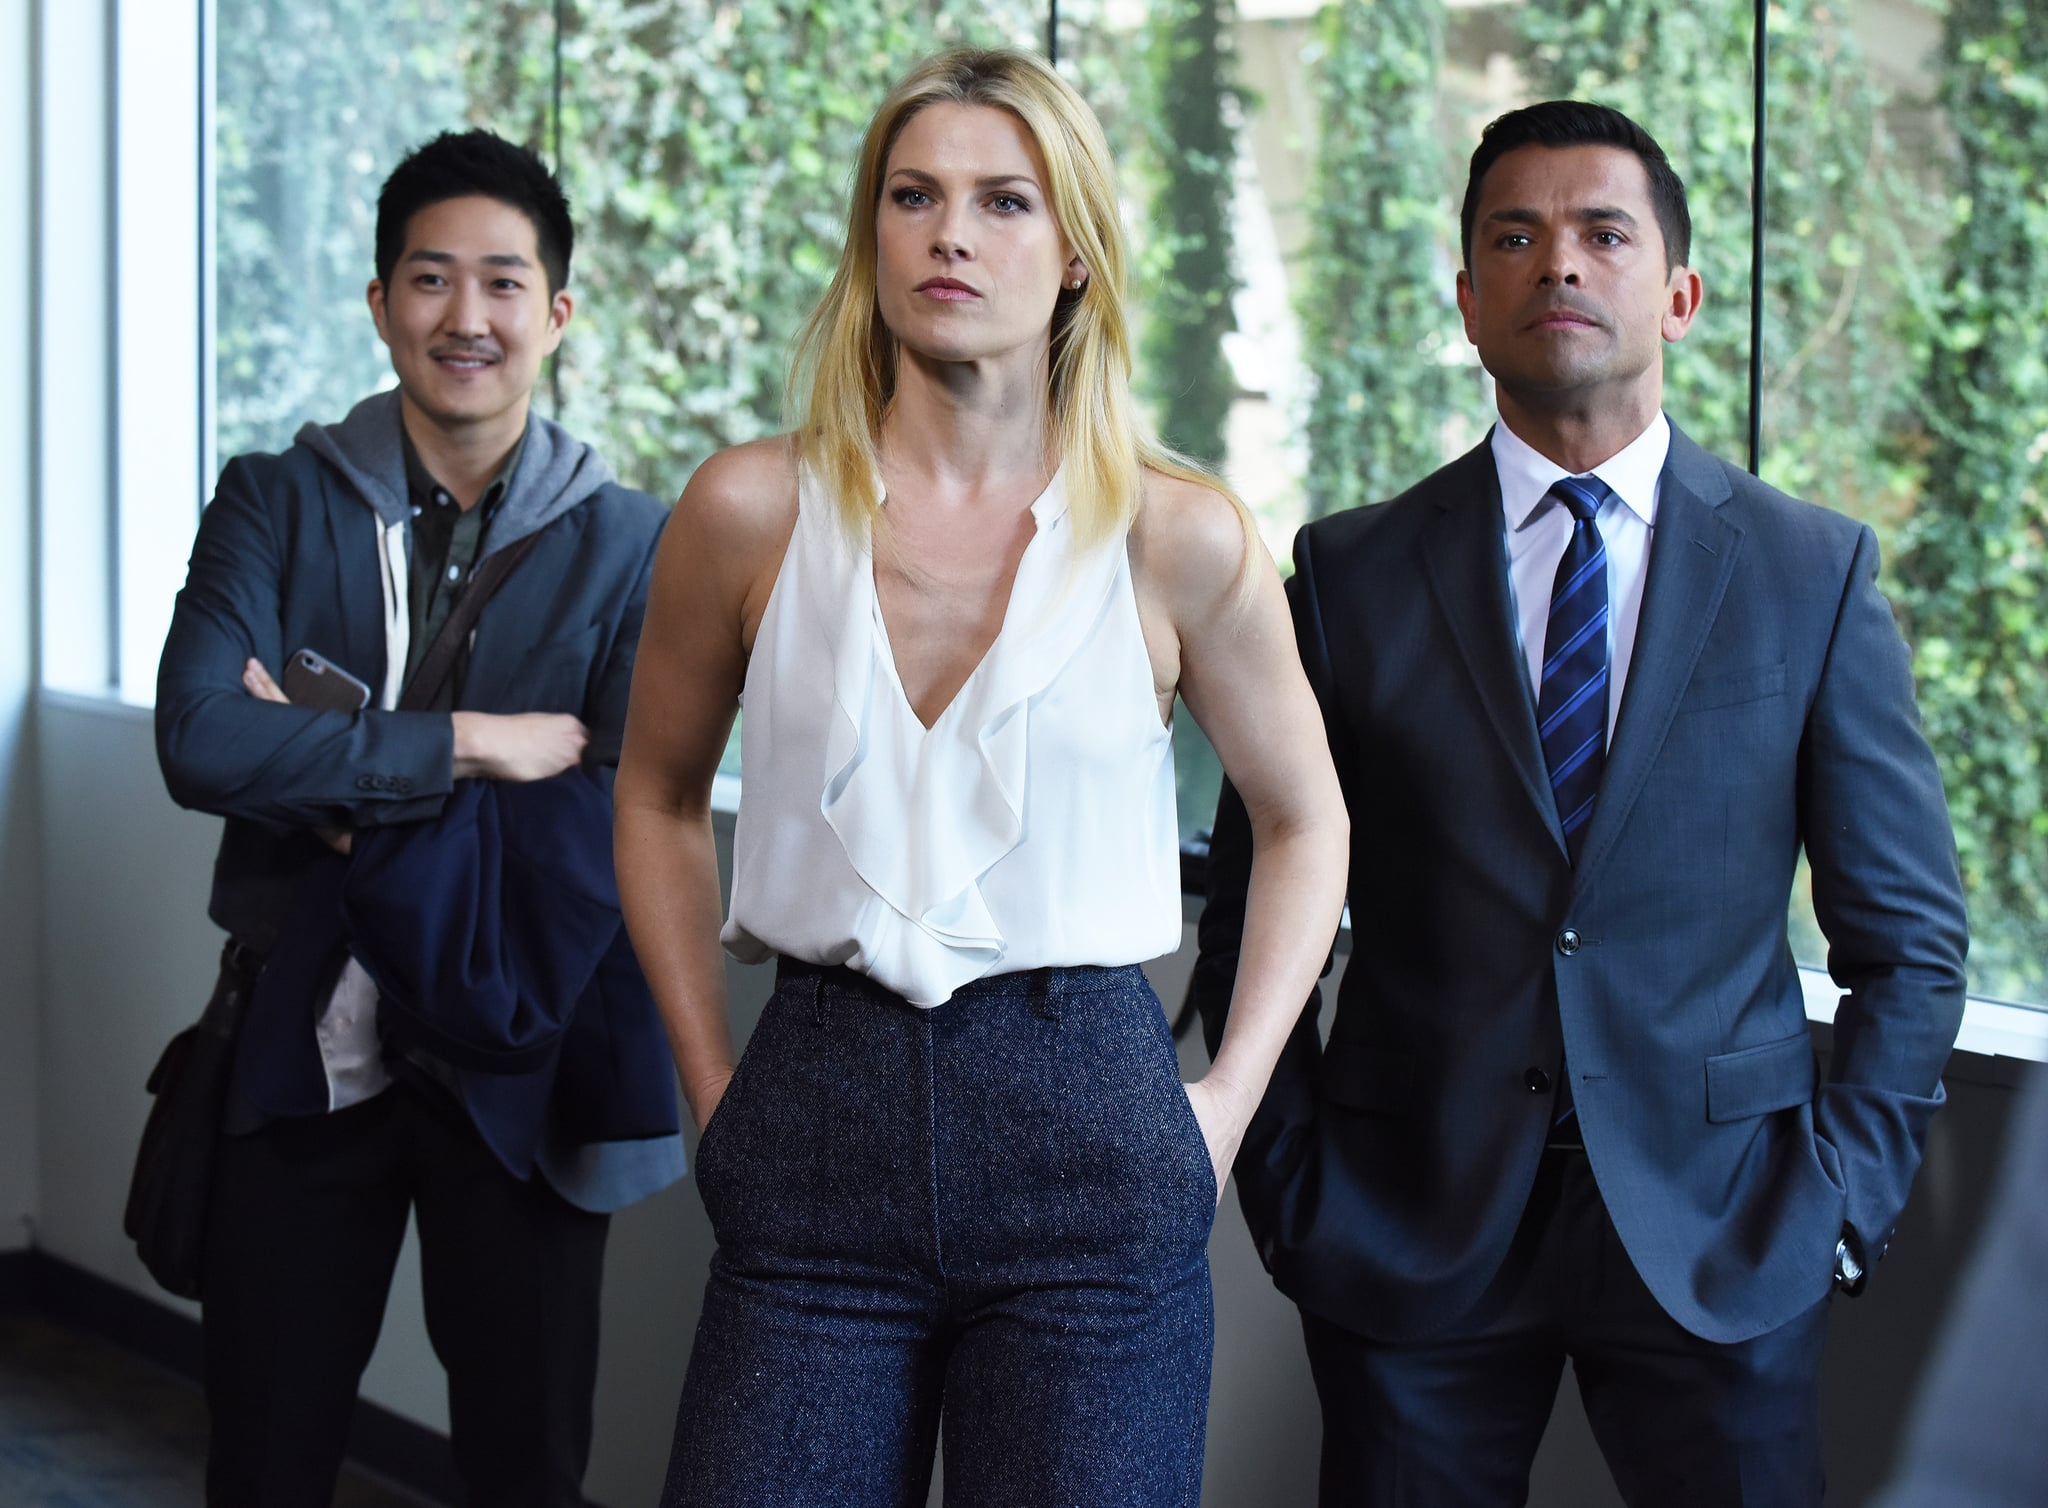 PITCH, l-r: Tim Jo, Ali Larter, Mark Consuelos in 'Pilot' (Season 1, Episode 1, aired September 22, 2016). Fox/courtesy Everett Collection